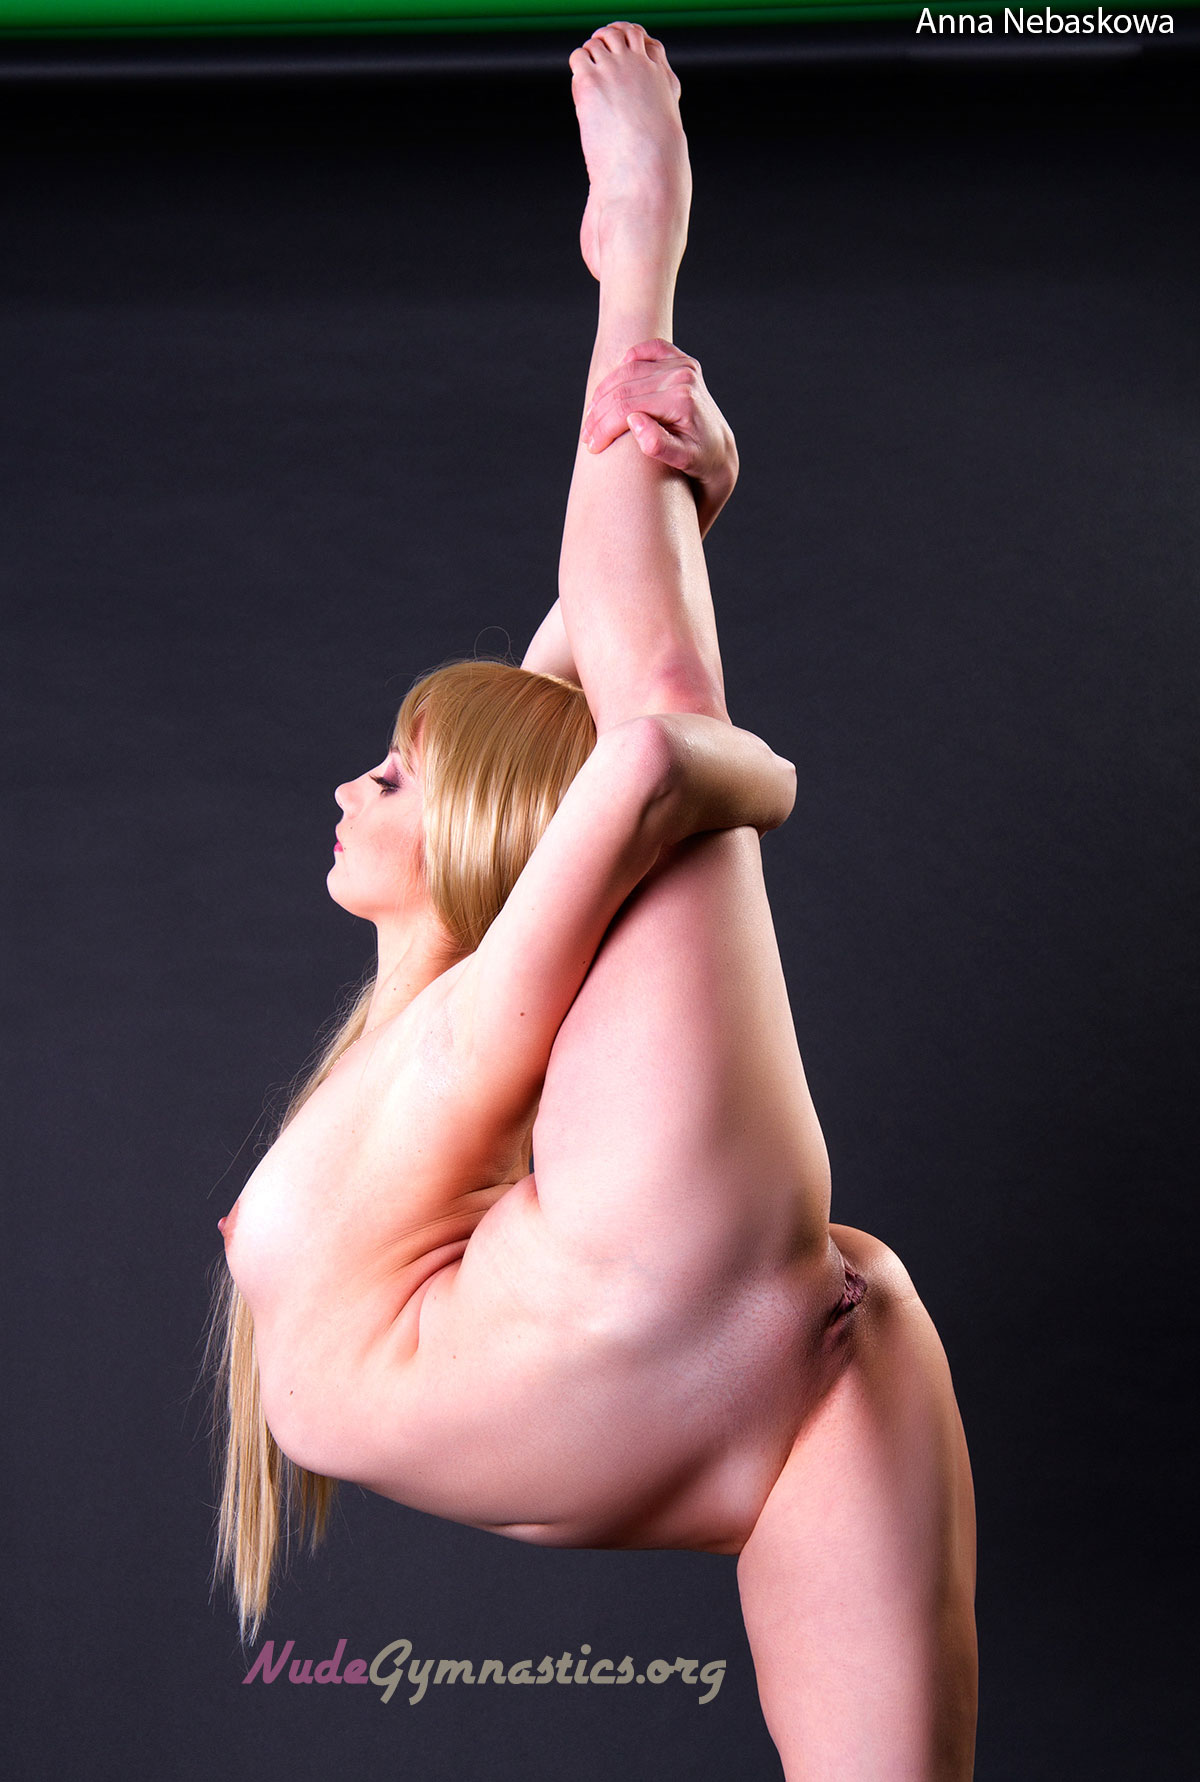 Grateful for Hot sexies nude gymnastics girls